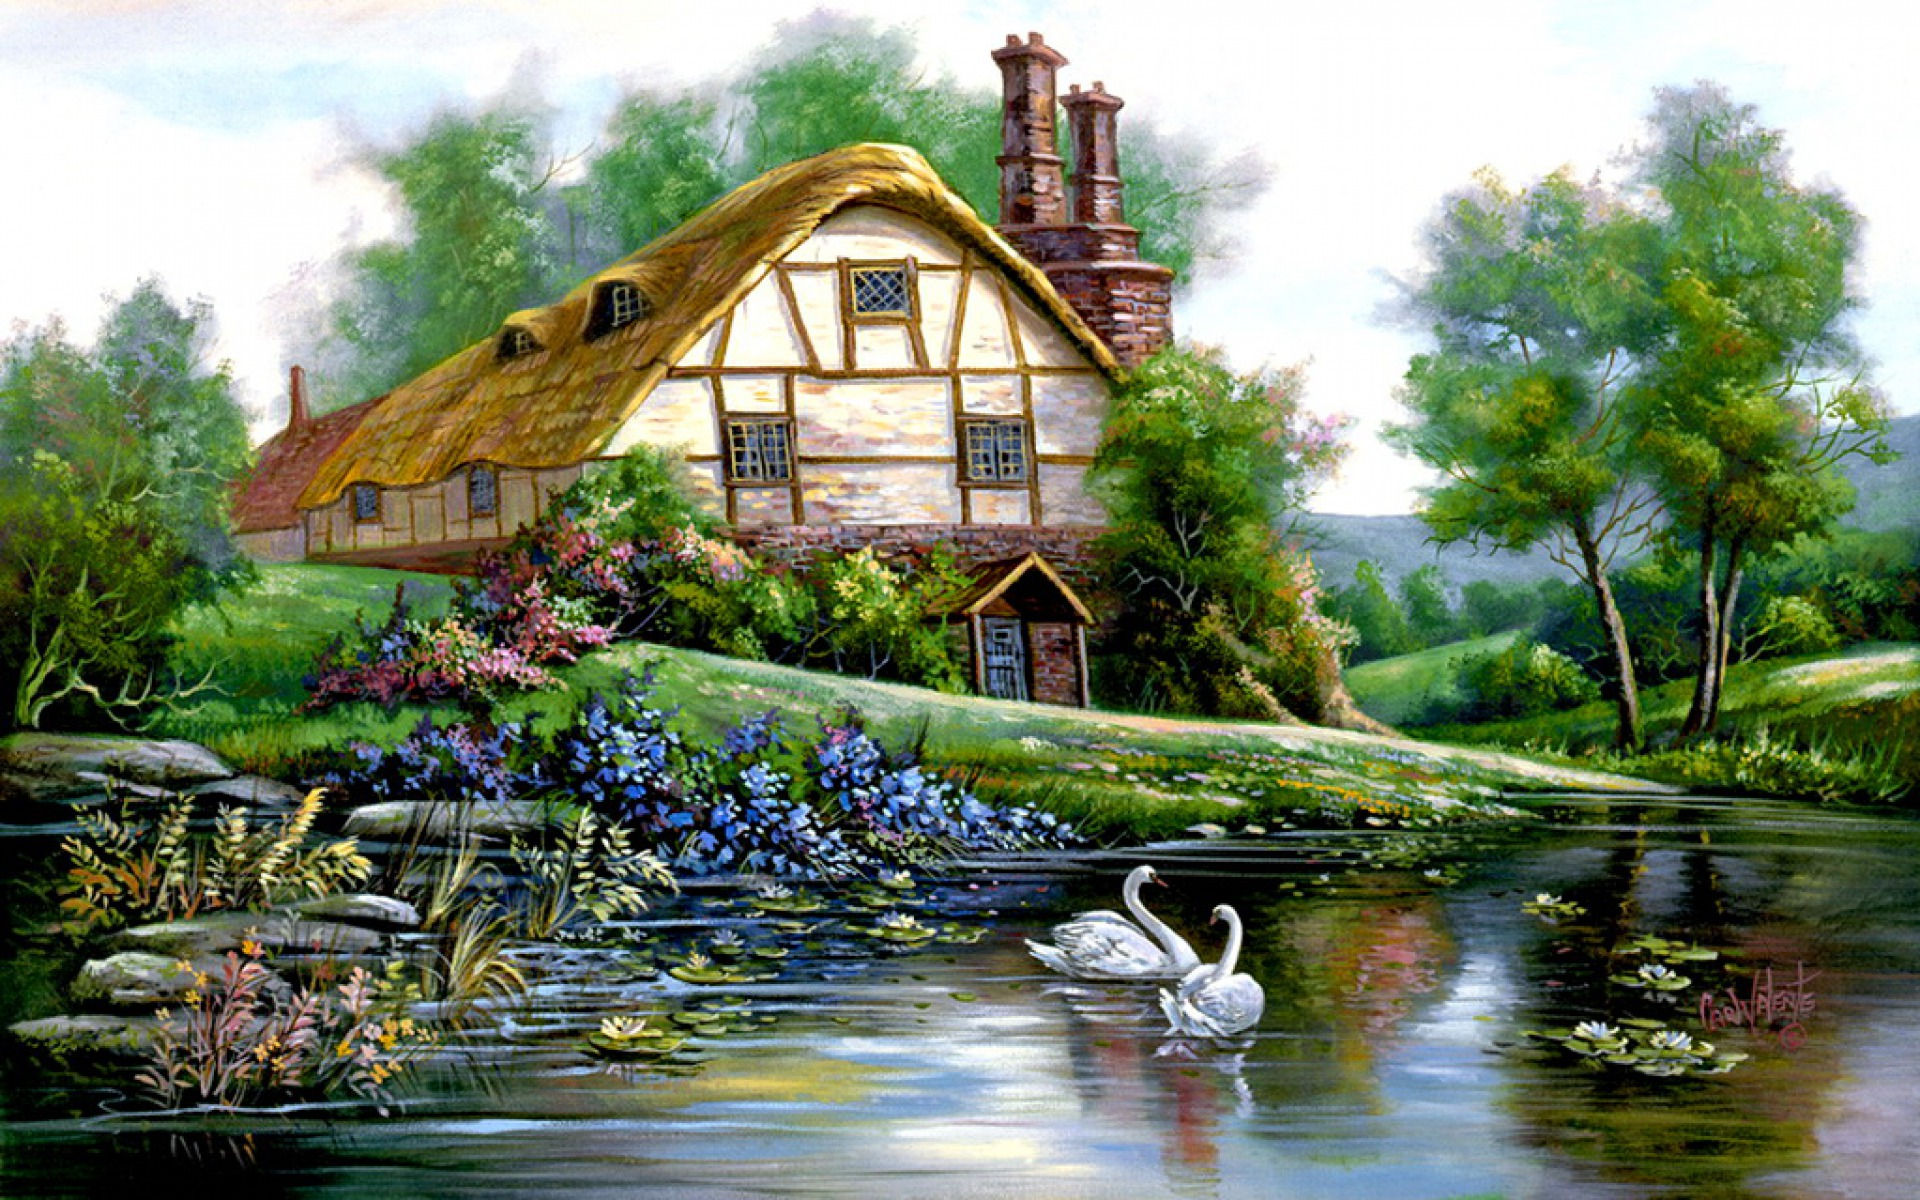 1920x1200 Lake Cottage Desktop Pc And Mac Wallpaper HD Wallpapers Download Free Images Wallpaper [1000image.com]